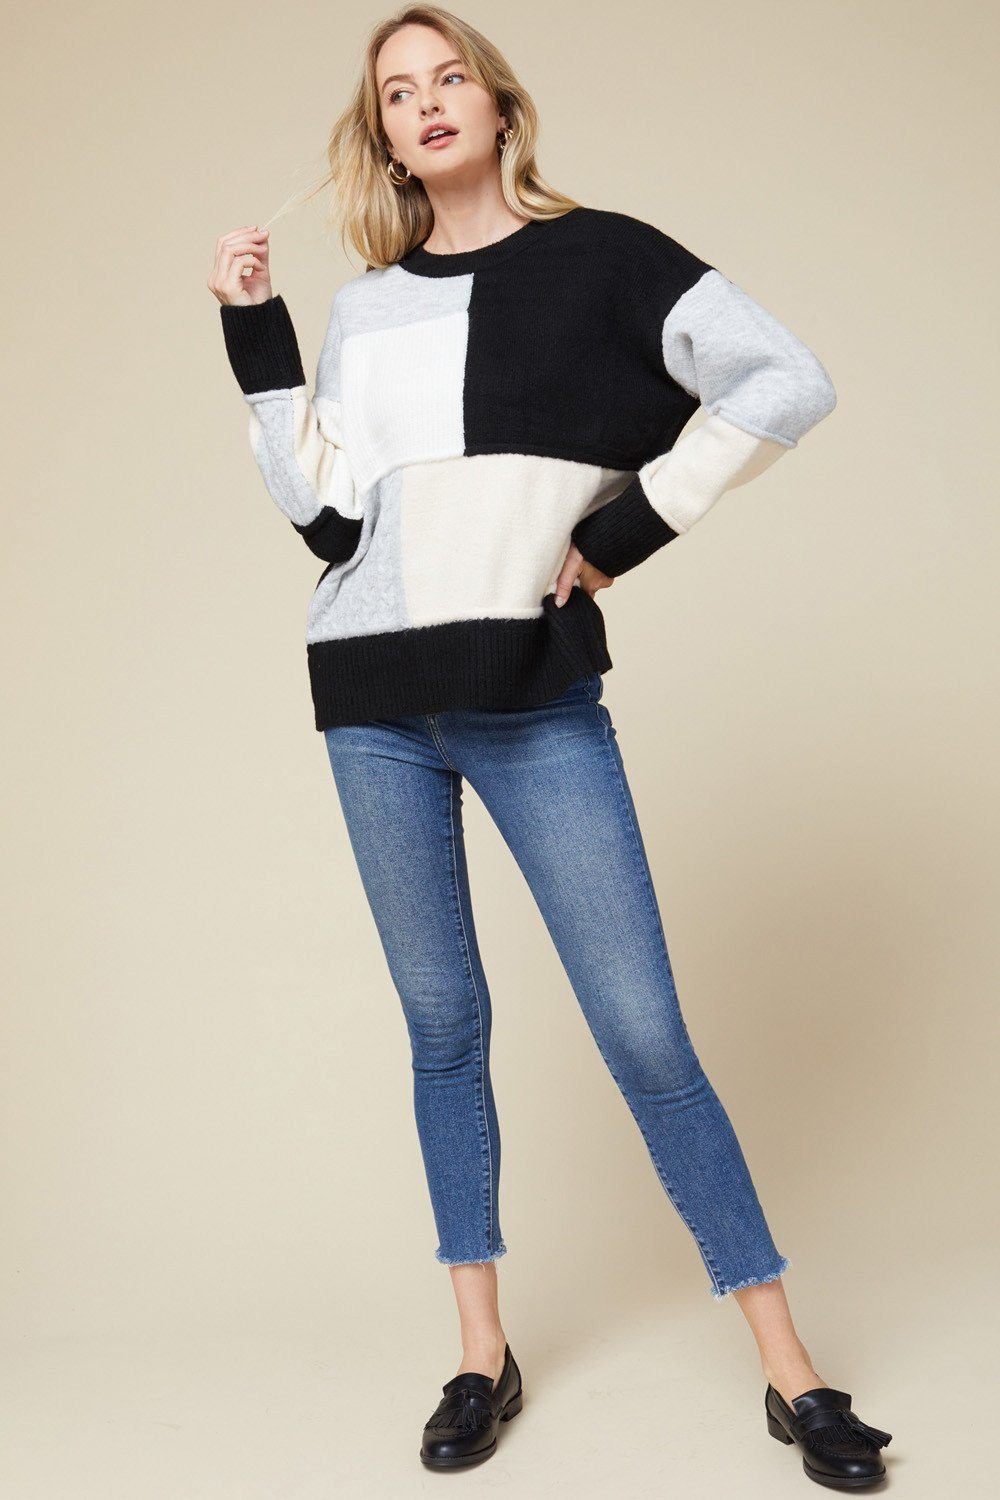 Carried Away Black Combo Color Block Sweater - Caroline Hill